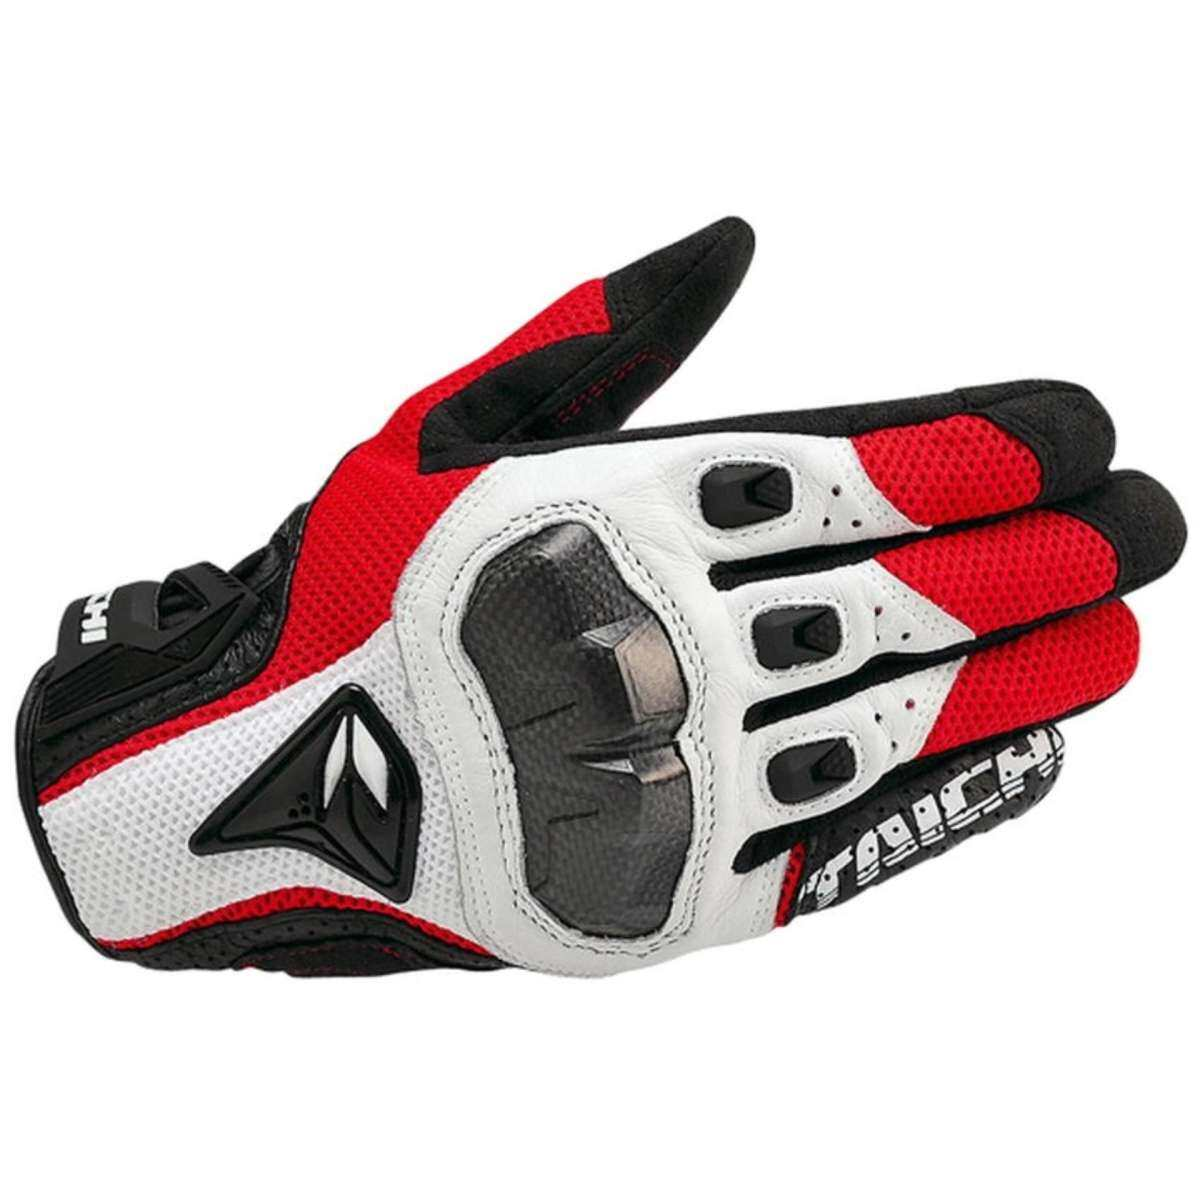 DualX RS Taichi RST391 Mens Perforated leather Motorcycle Mesh Gloves- M size